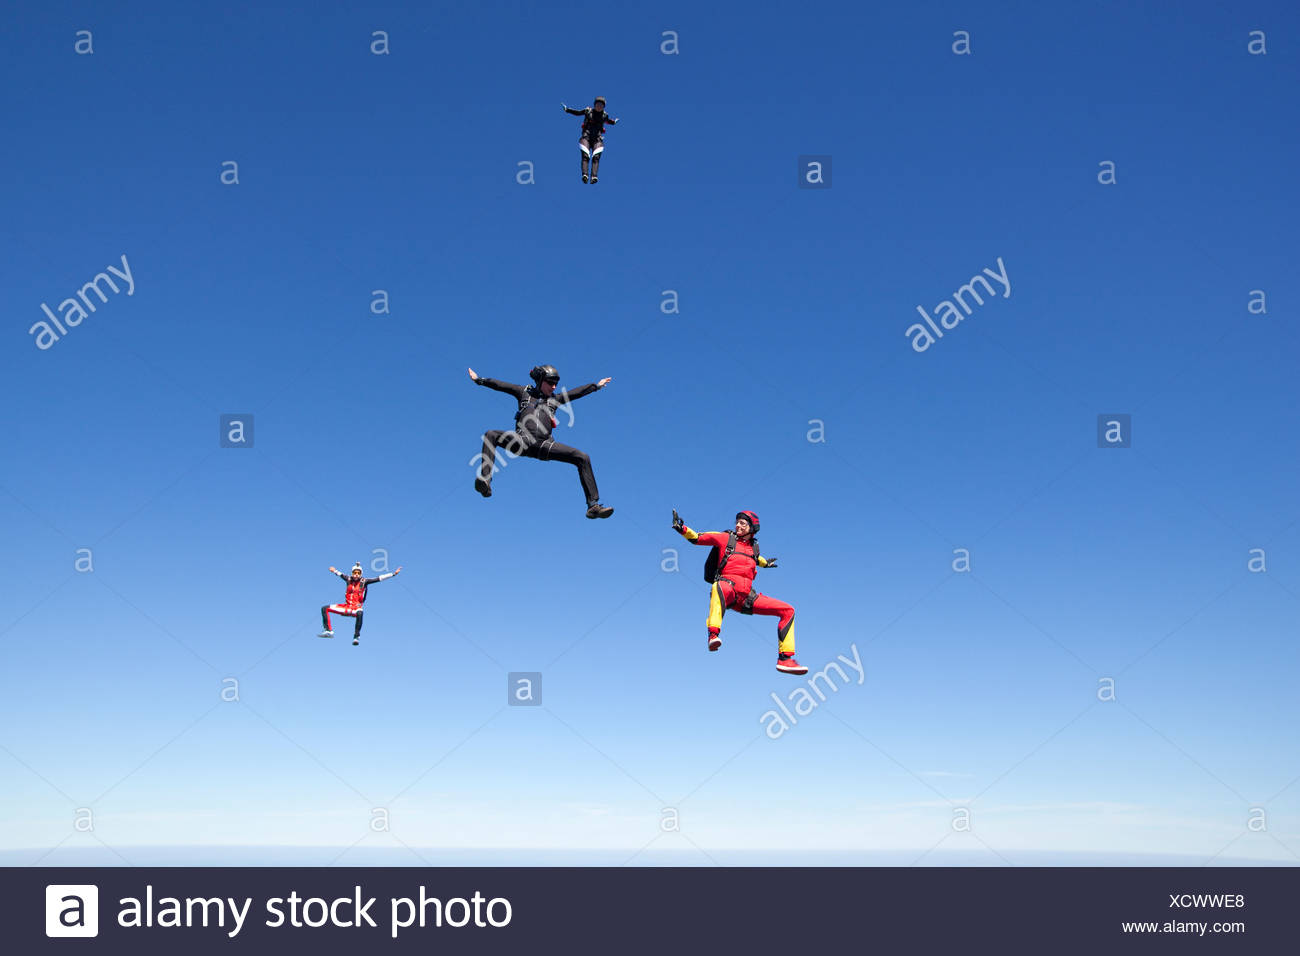 People skydiving over clouds - Stock Image